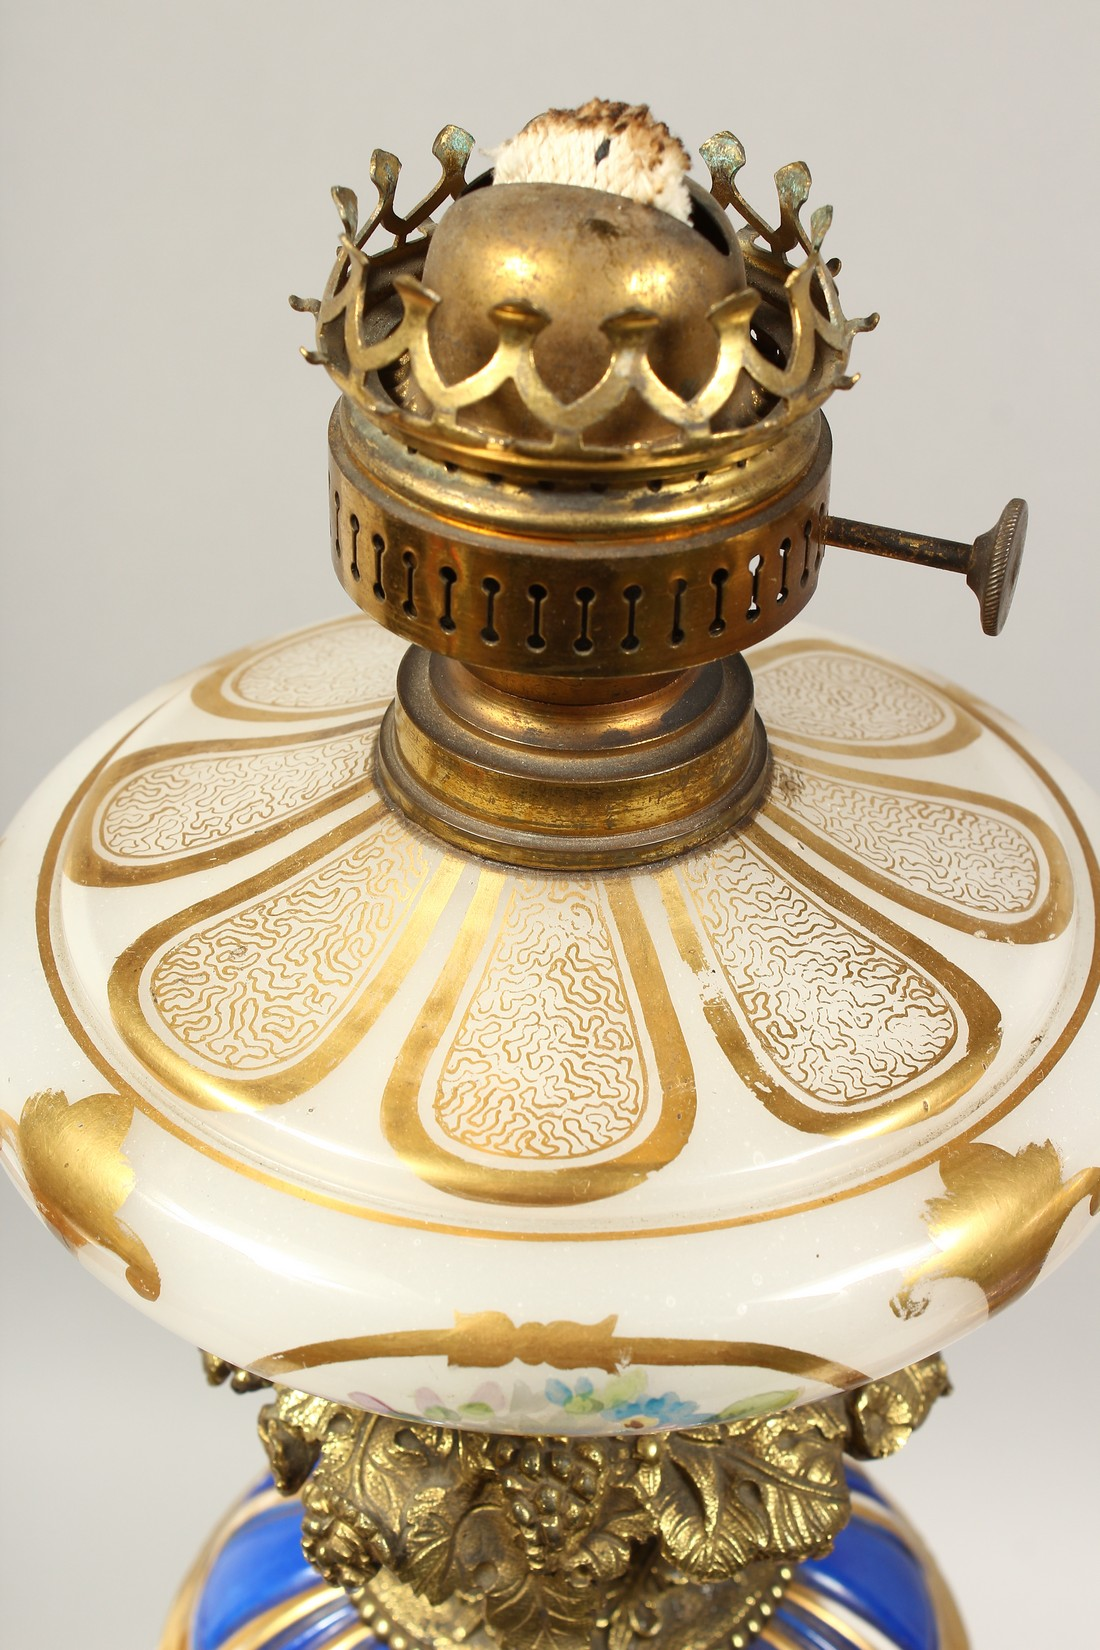 A SUPERB PAIR OF 19TH CENTURY FRENCH PORCELAIN AND GILT BRONZE LAMPS ON STANDS, painted with - Image 3 of 24